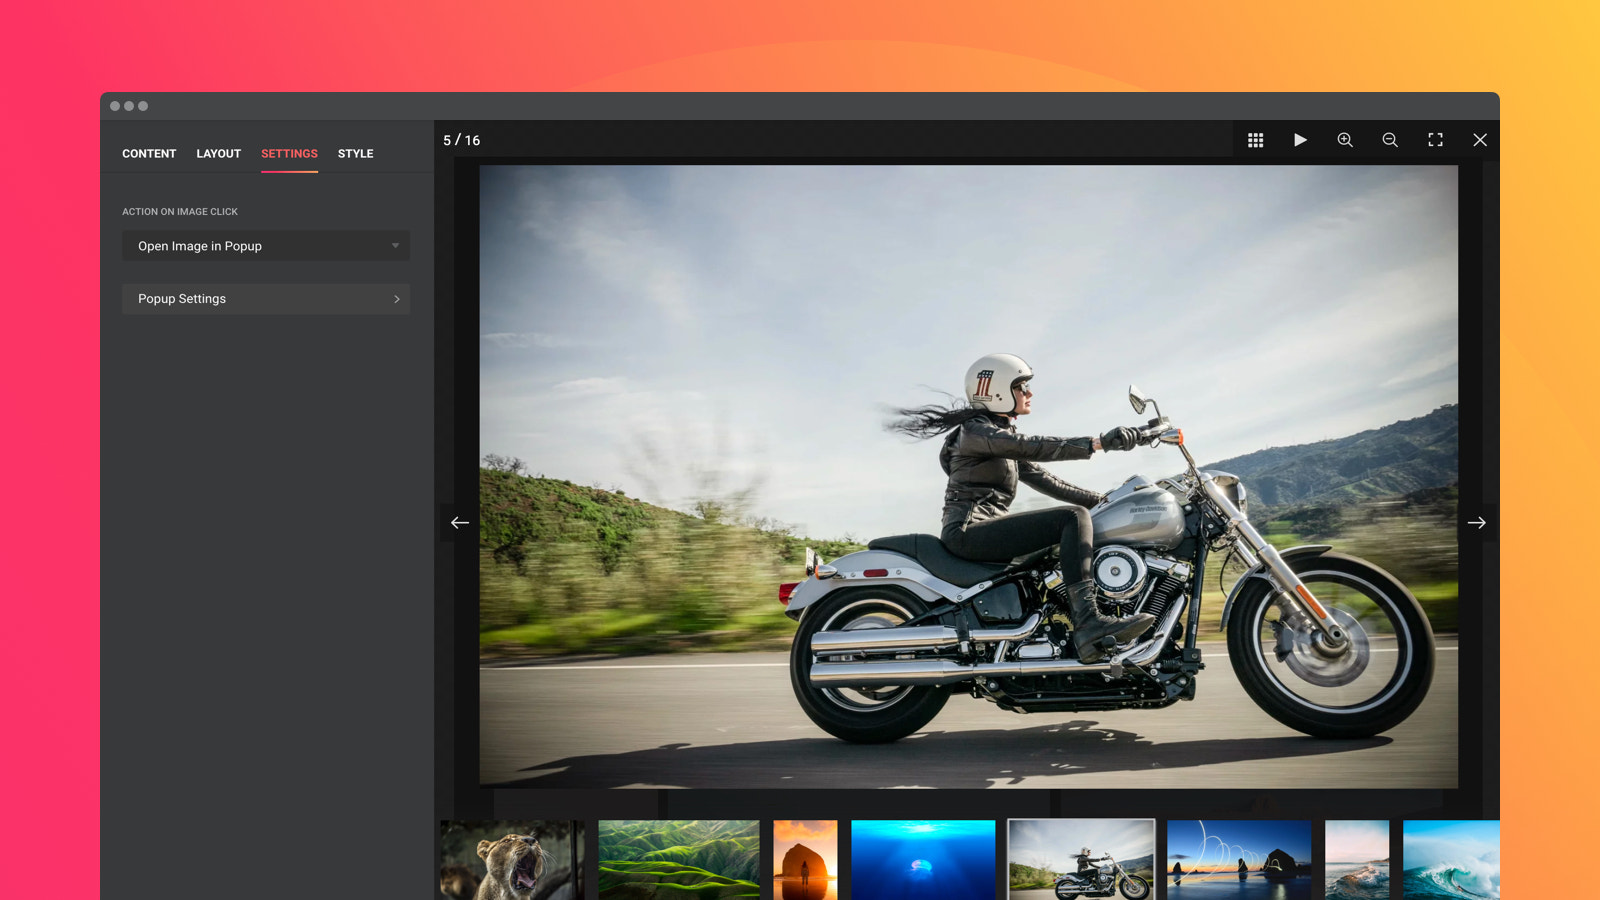 Let users see your photos in details using the popup option